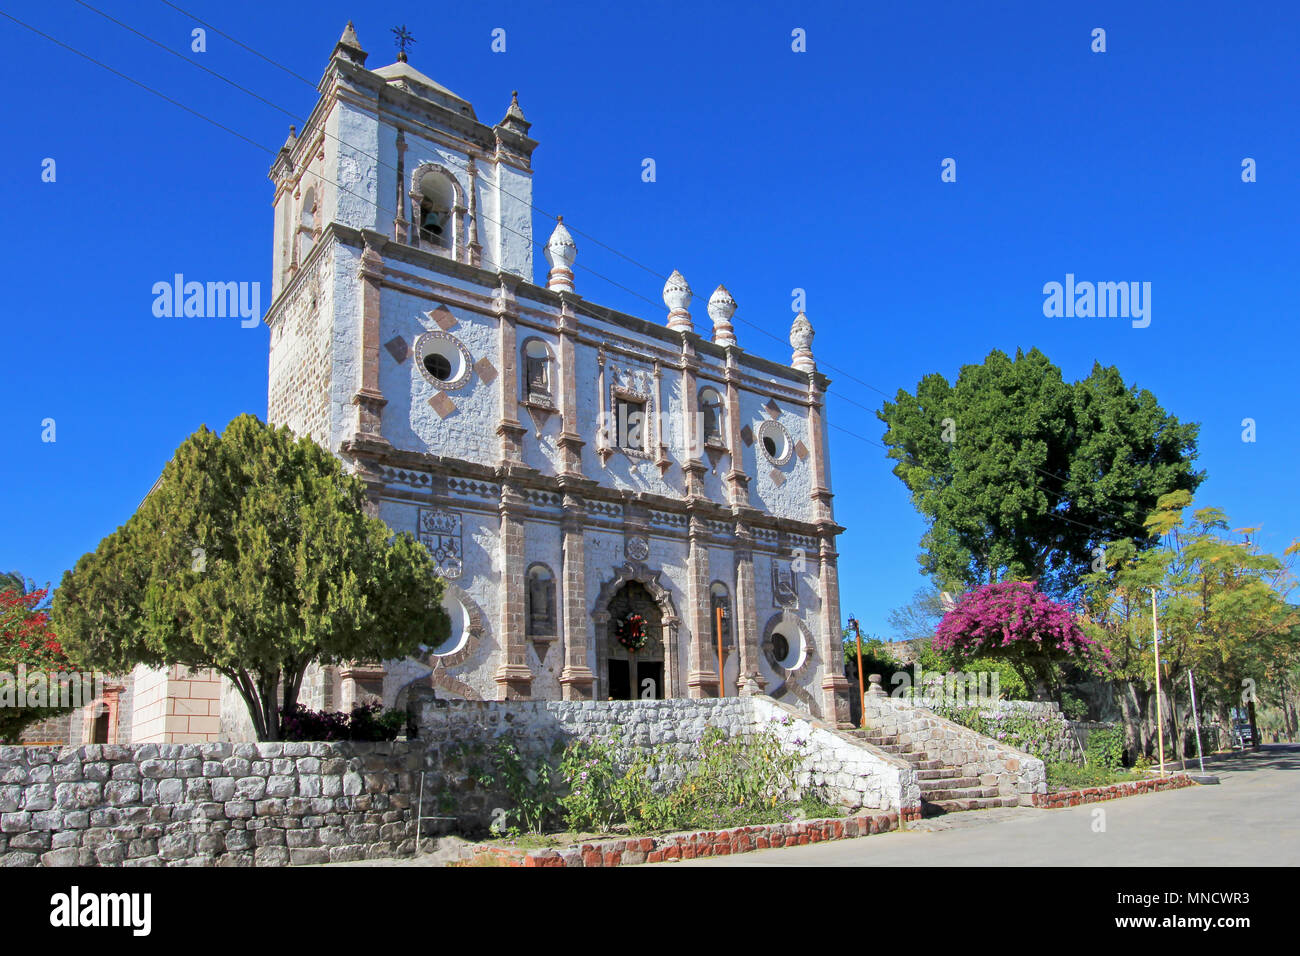 Old Franciscan church, Mision San Ignacio Kadakaaman, in San Ignacio, Baja California, Mexico - Stock Image